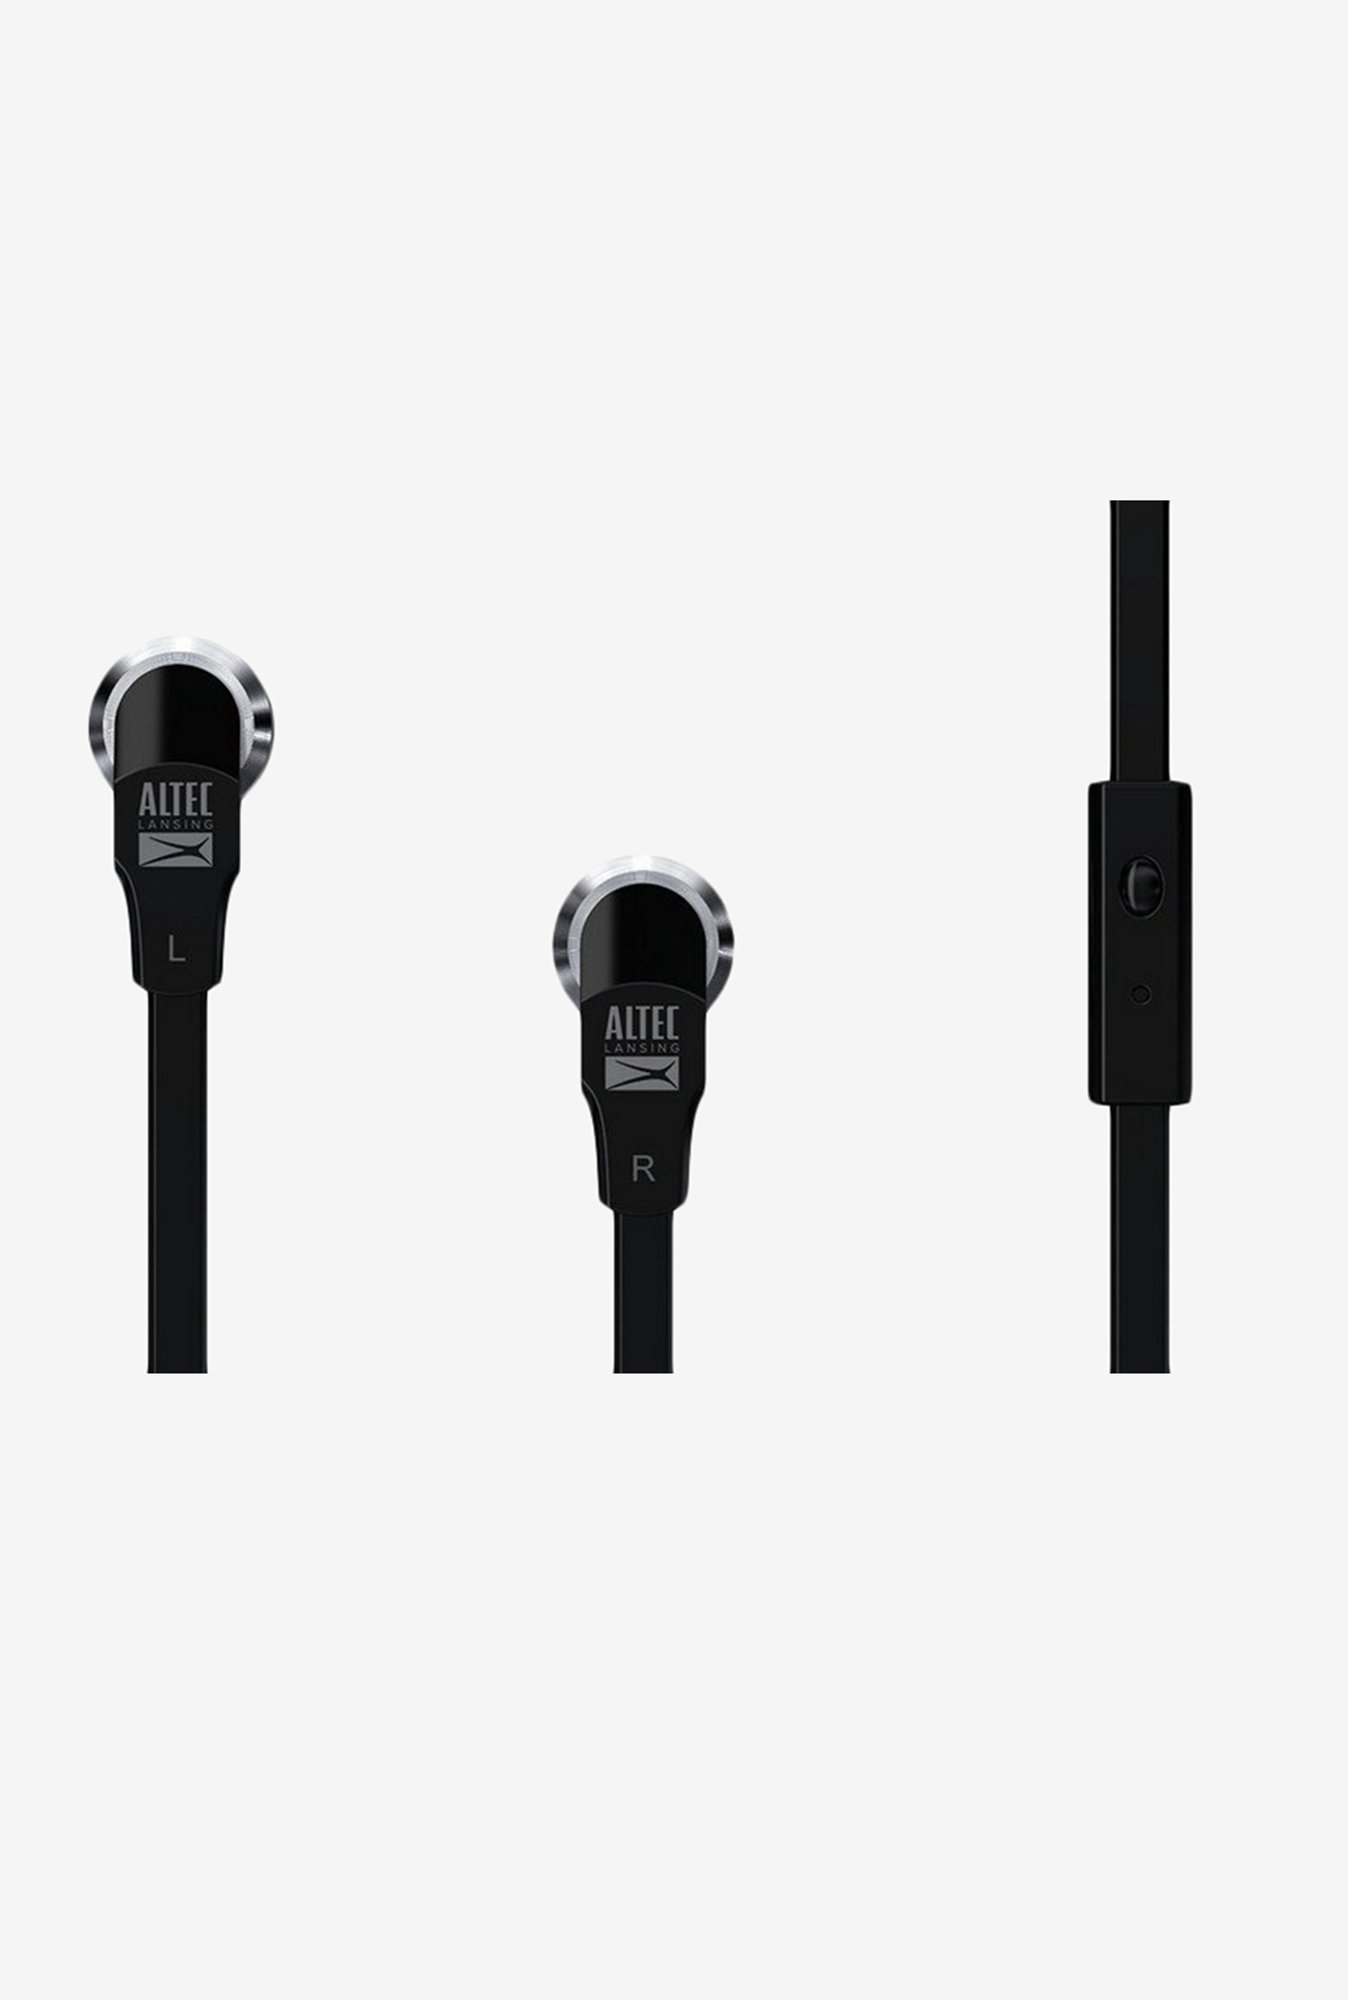 Altec Lansing MZX145-BLK In-Ear Earphone Black